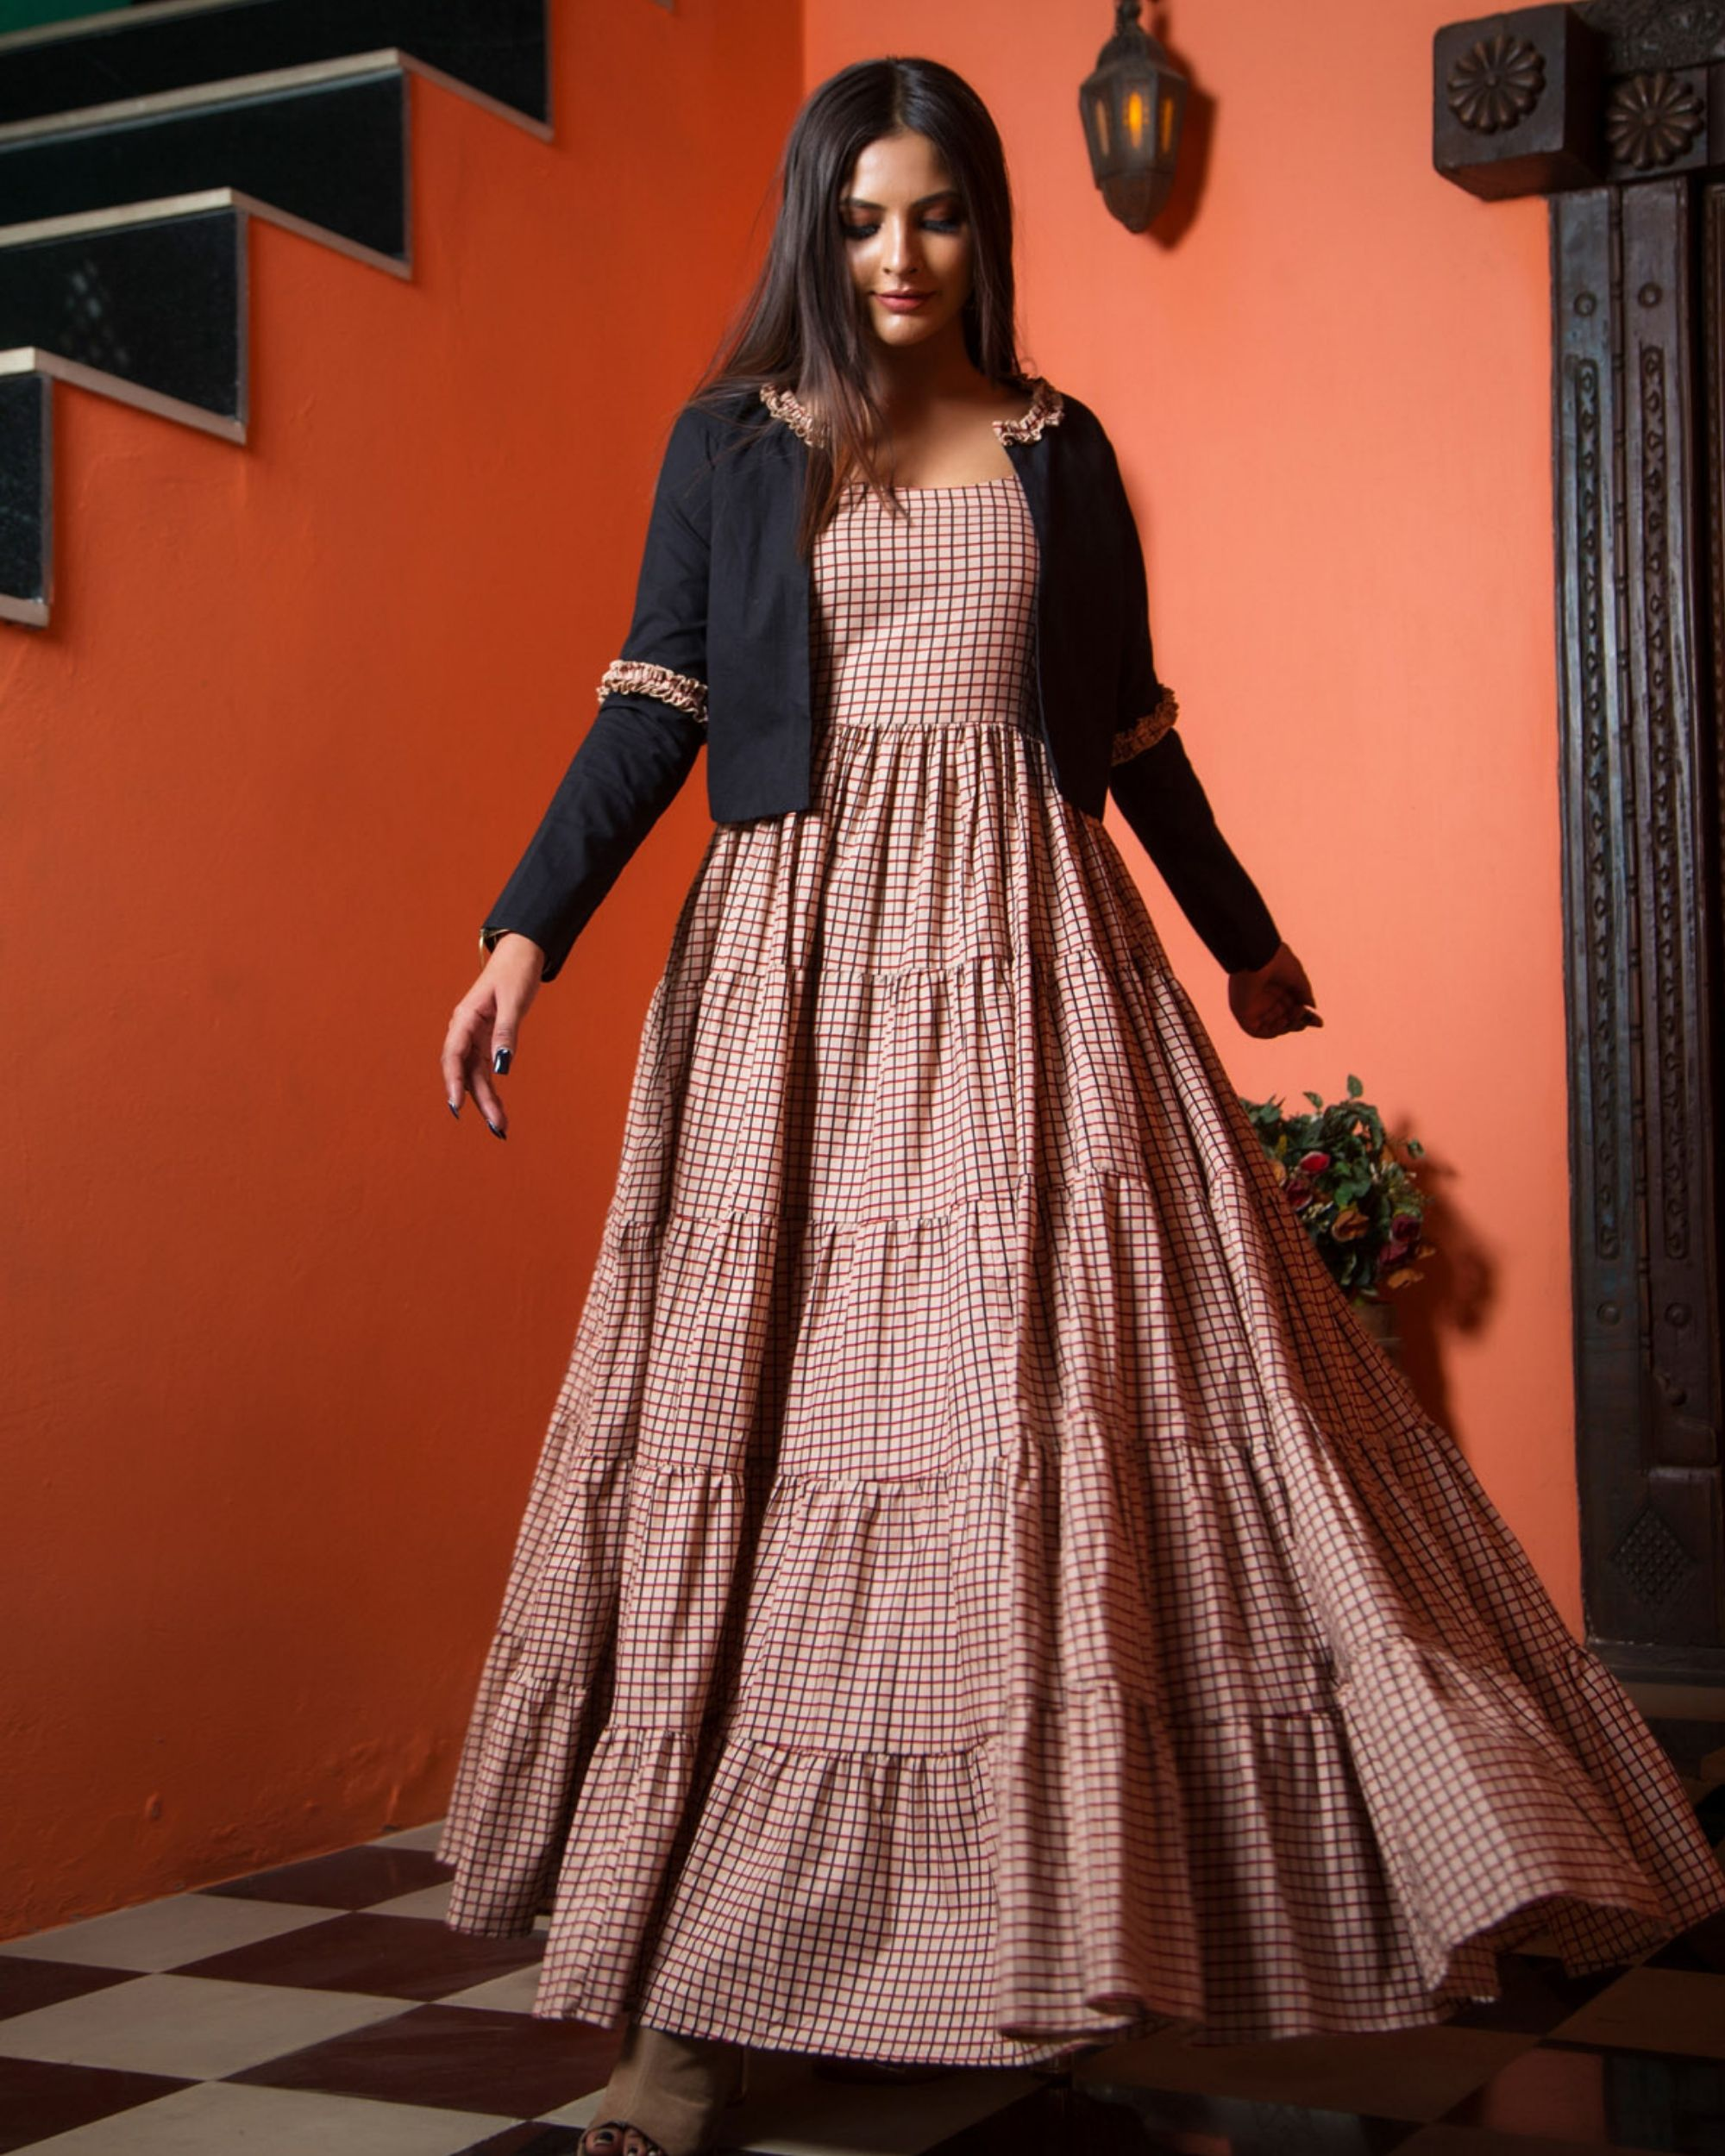 Cotton checks tiered dress with jacket - set of two